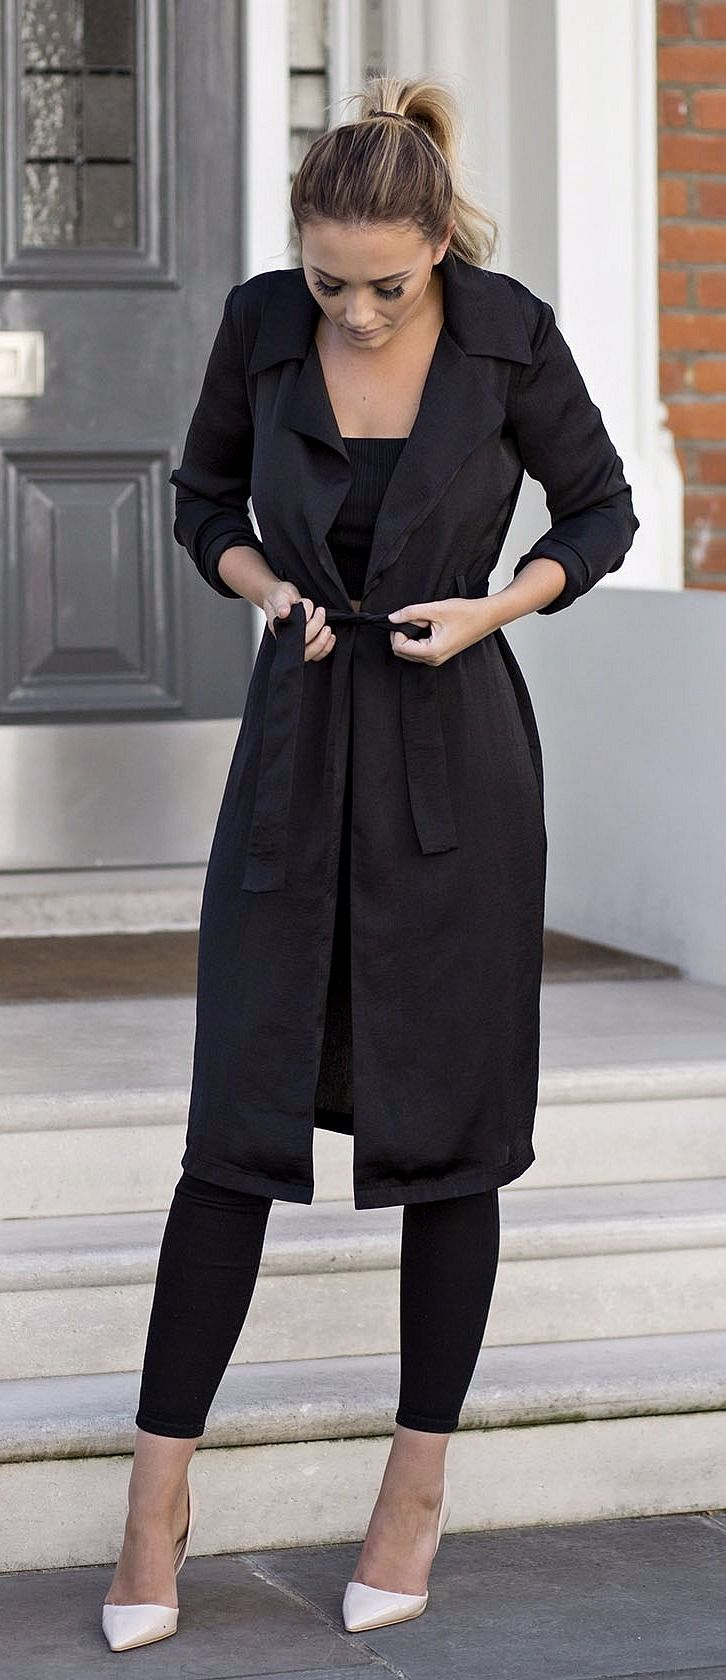 sarah ashcroft satin duster jacket black. Black duster jacket  | Black leggings outfit | Black monochrome look | Fall fashion | Fall styles (affiliate)